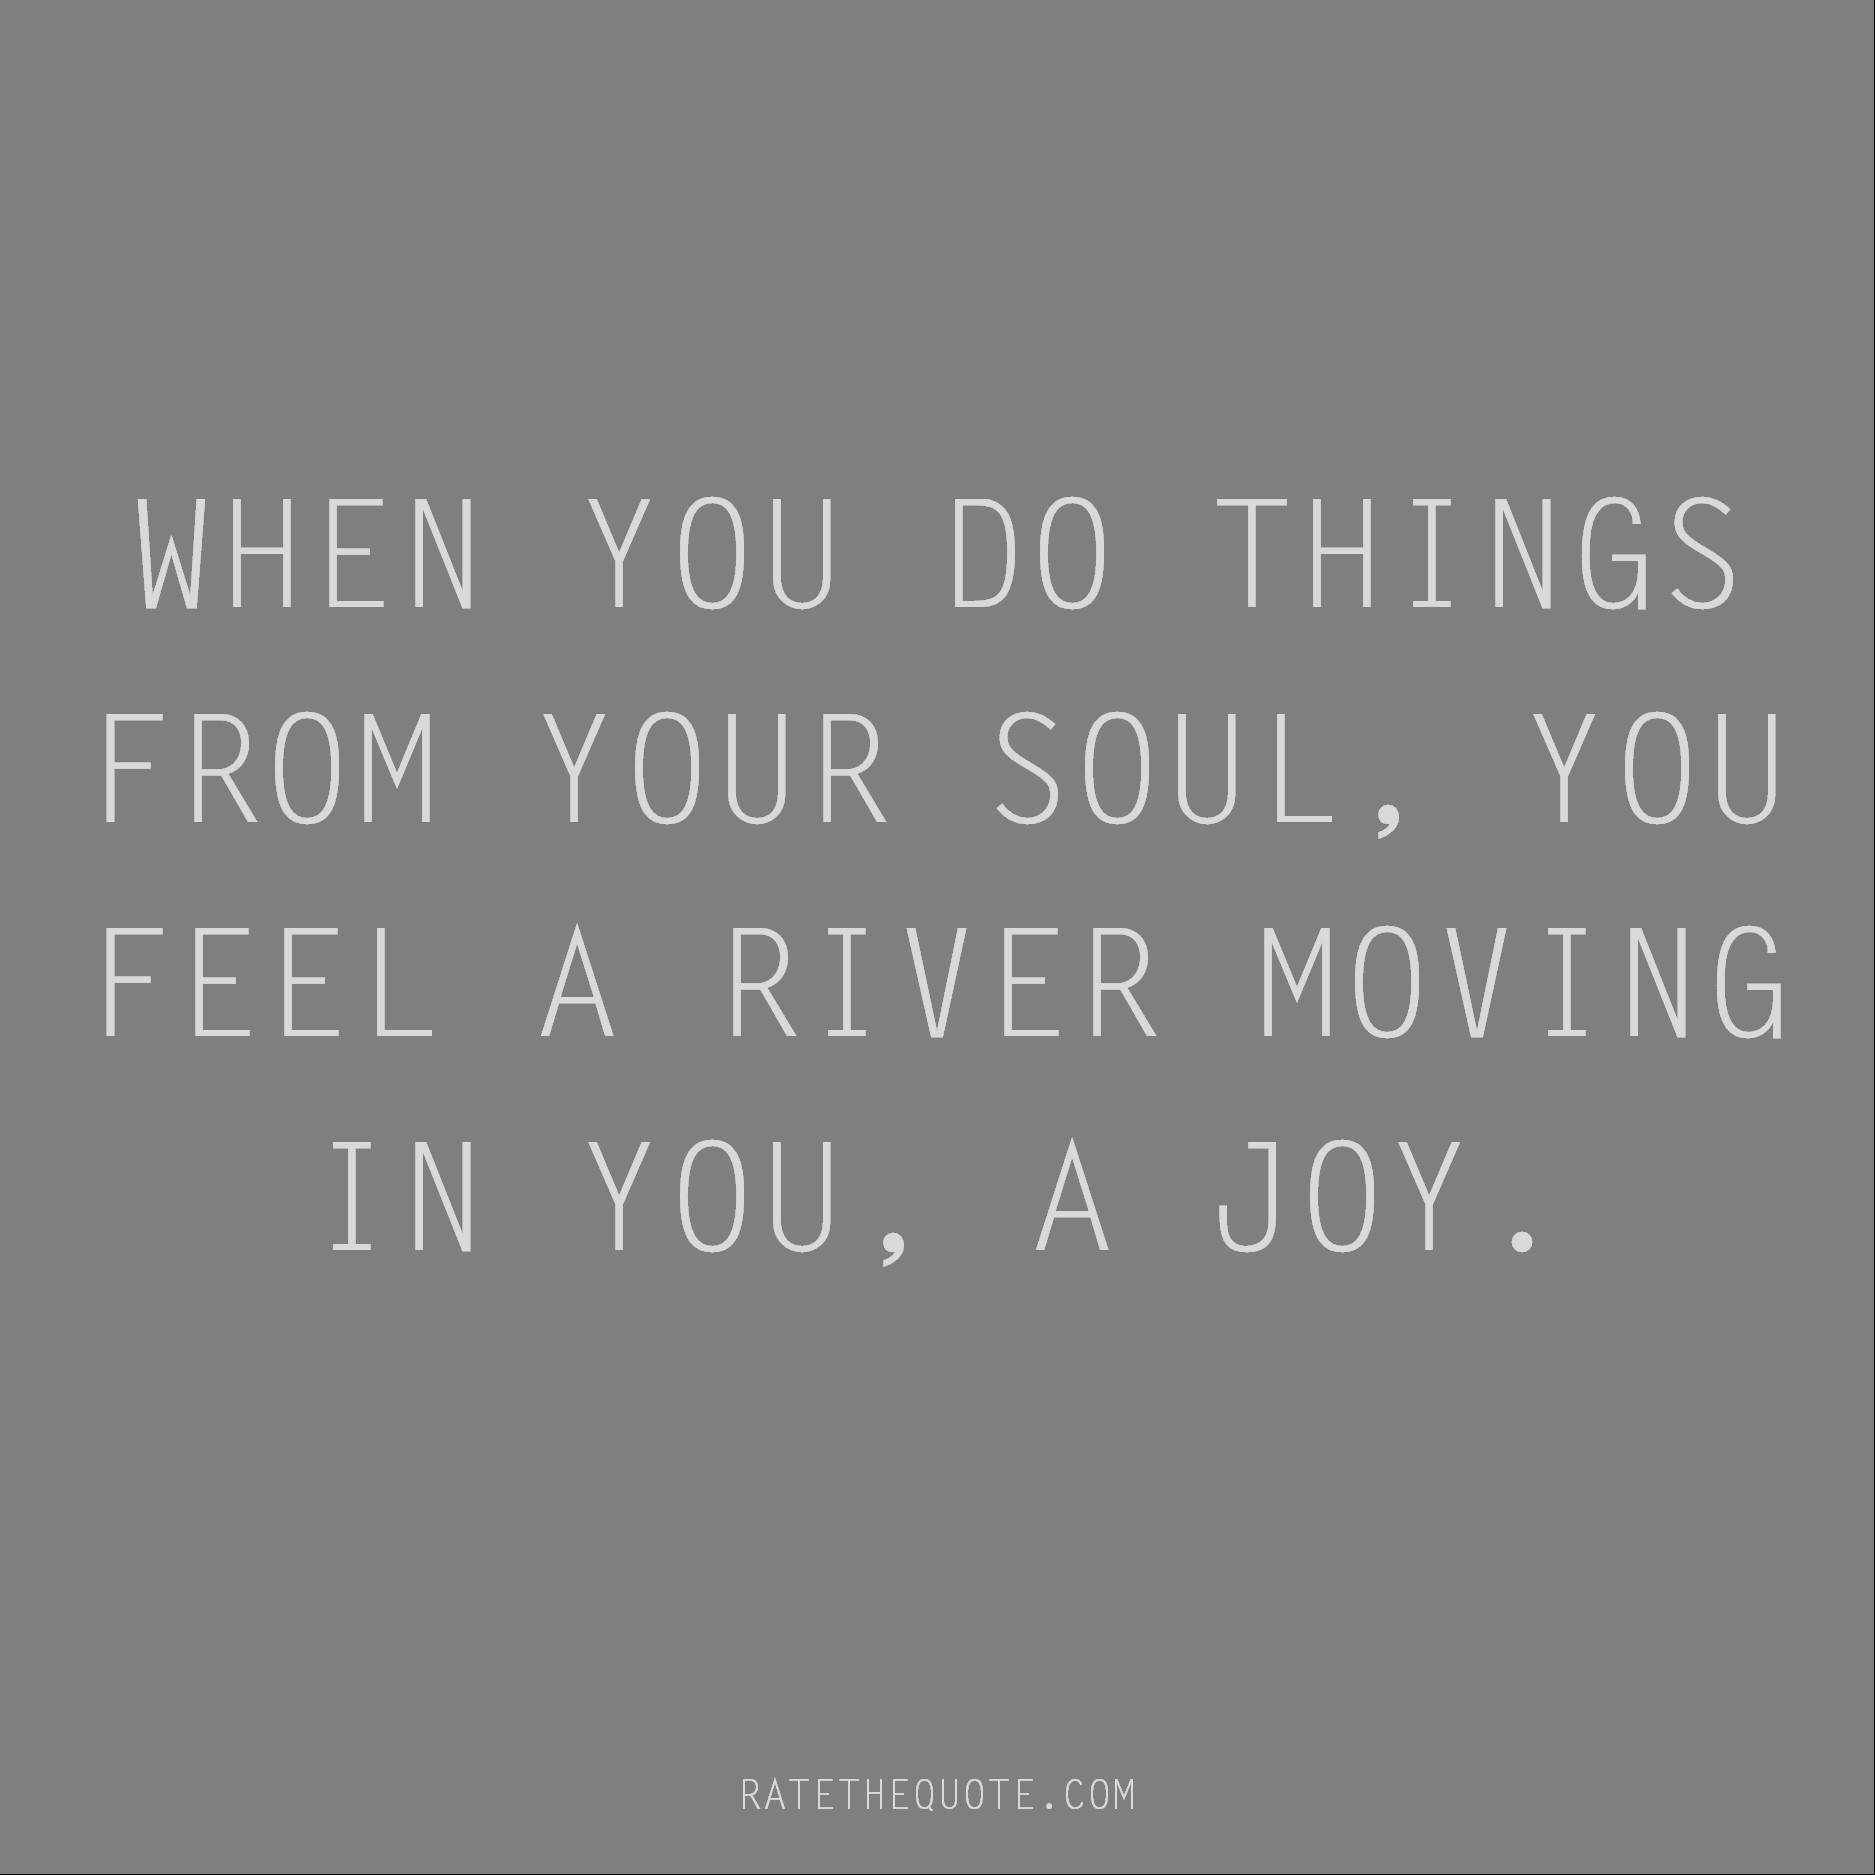 Rumi Quote When you do things from your soul, you feel a river moving in you, a joy.